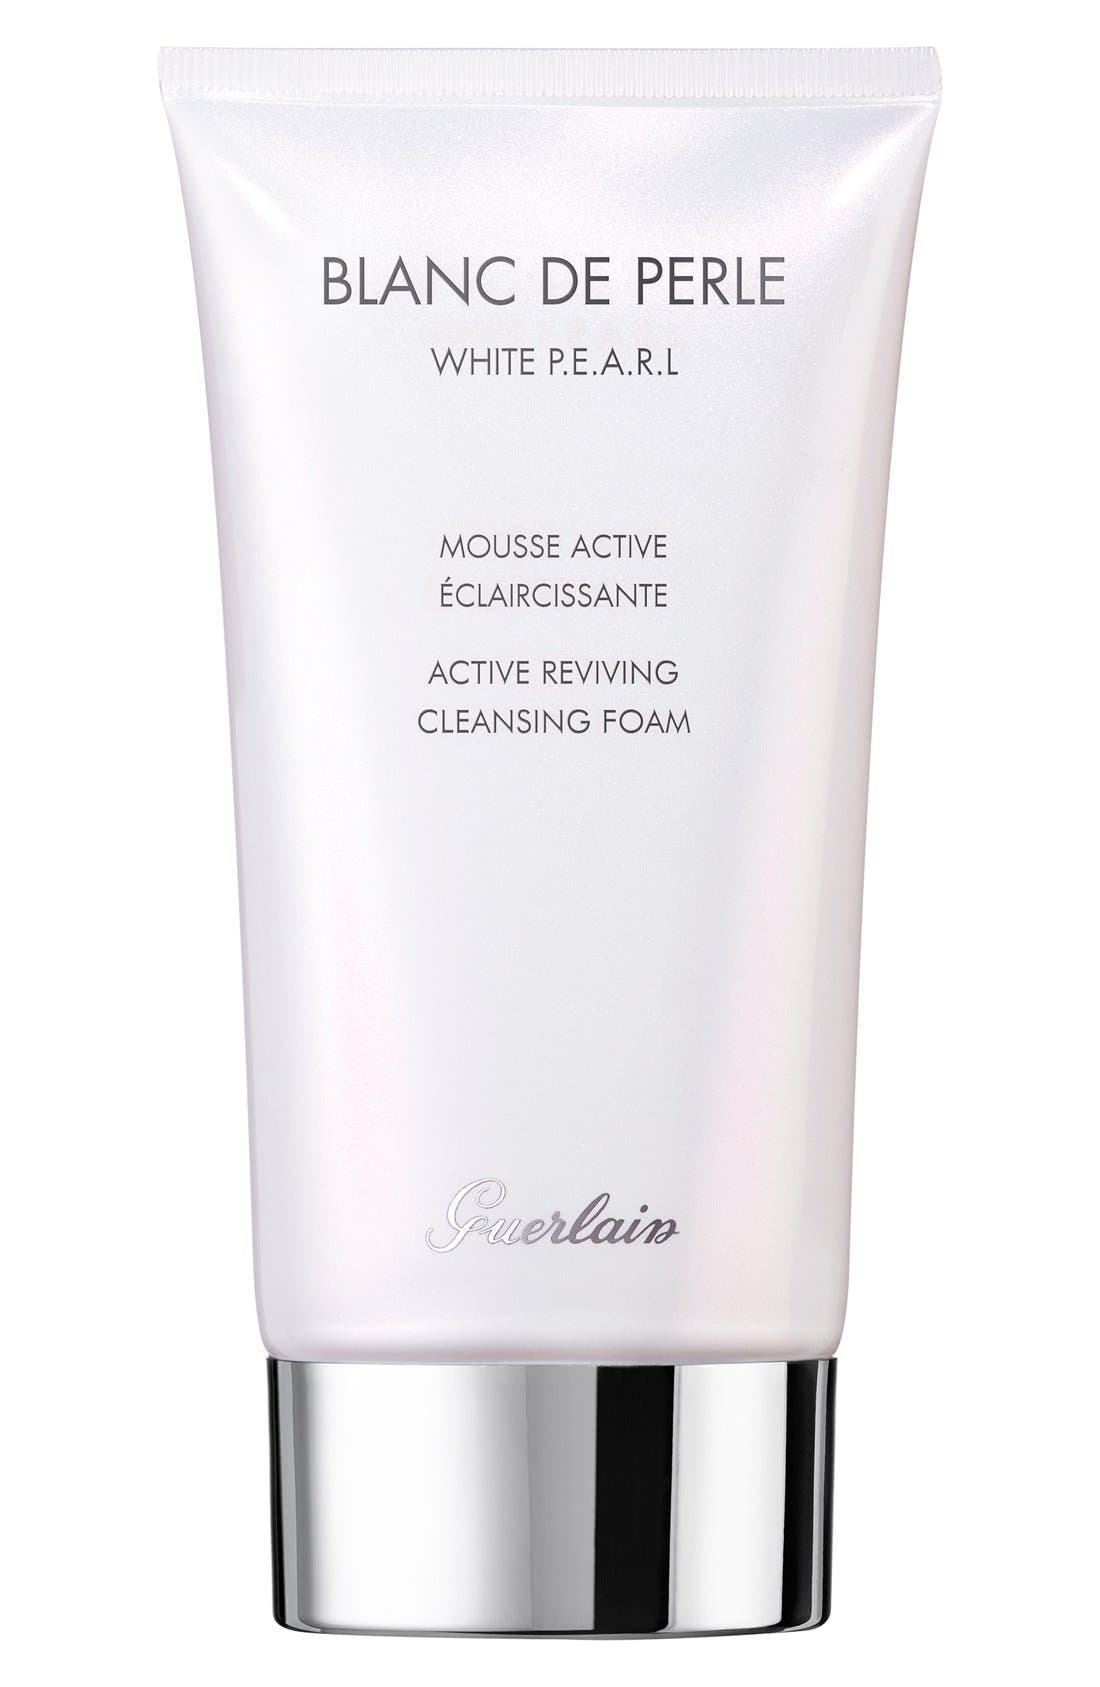 Guerlain 'Blanc de Perle' Active Reviving Cleansing Foam